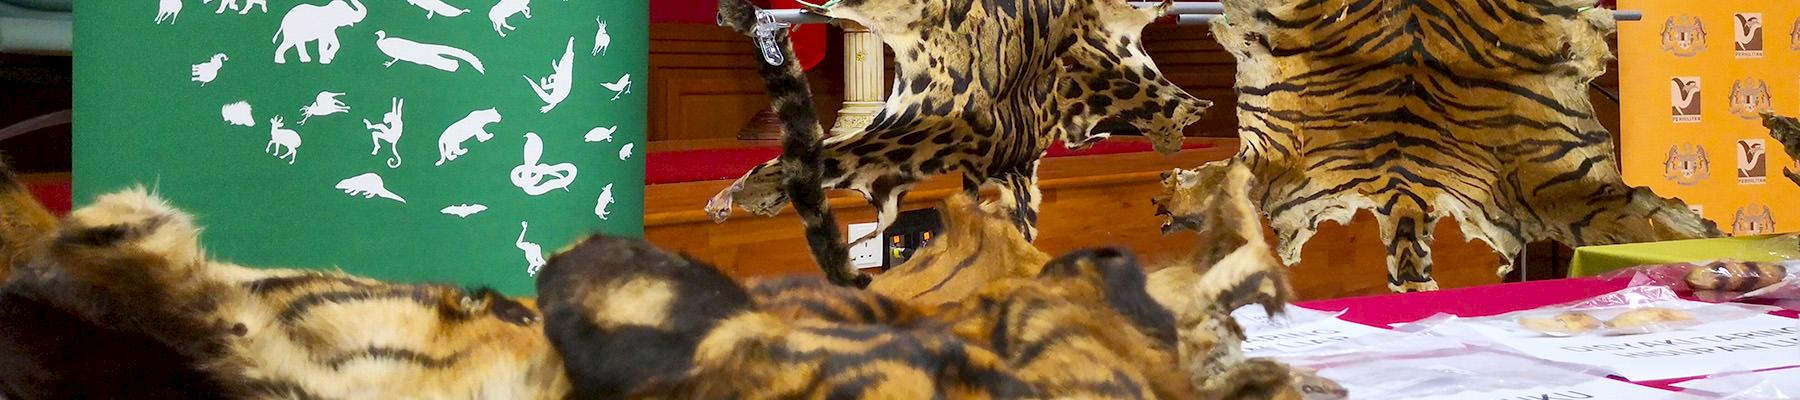 Tiger and leopard skins were among the wildlife products seized by authorities © TRAFFIC